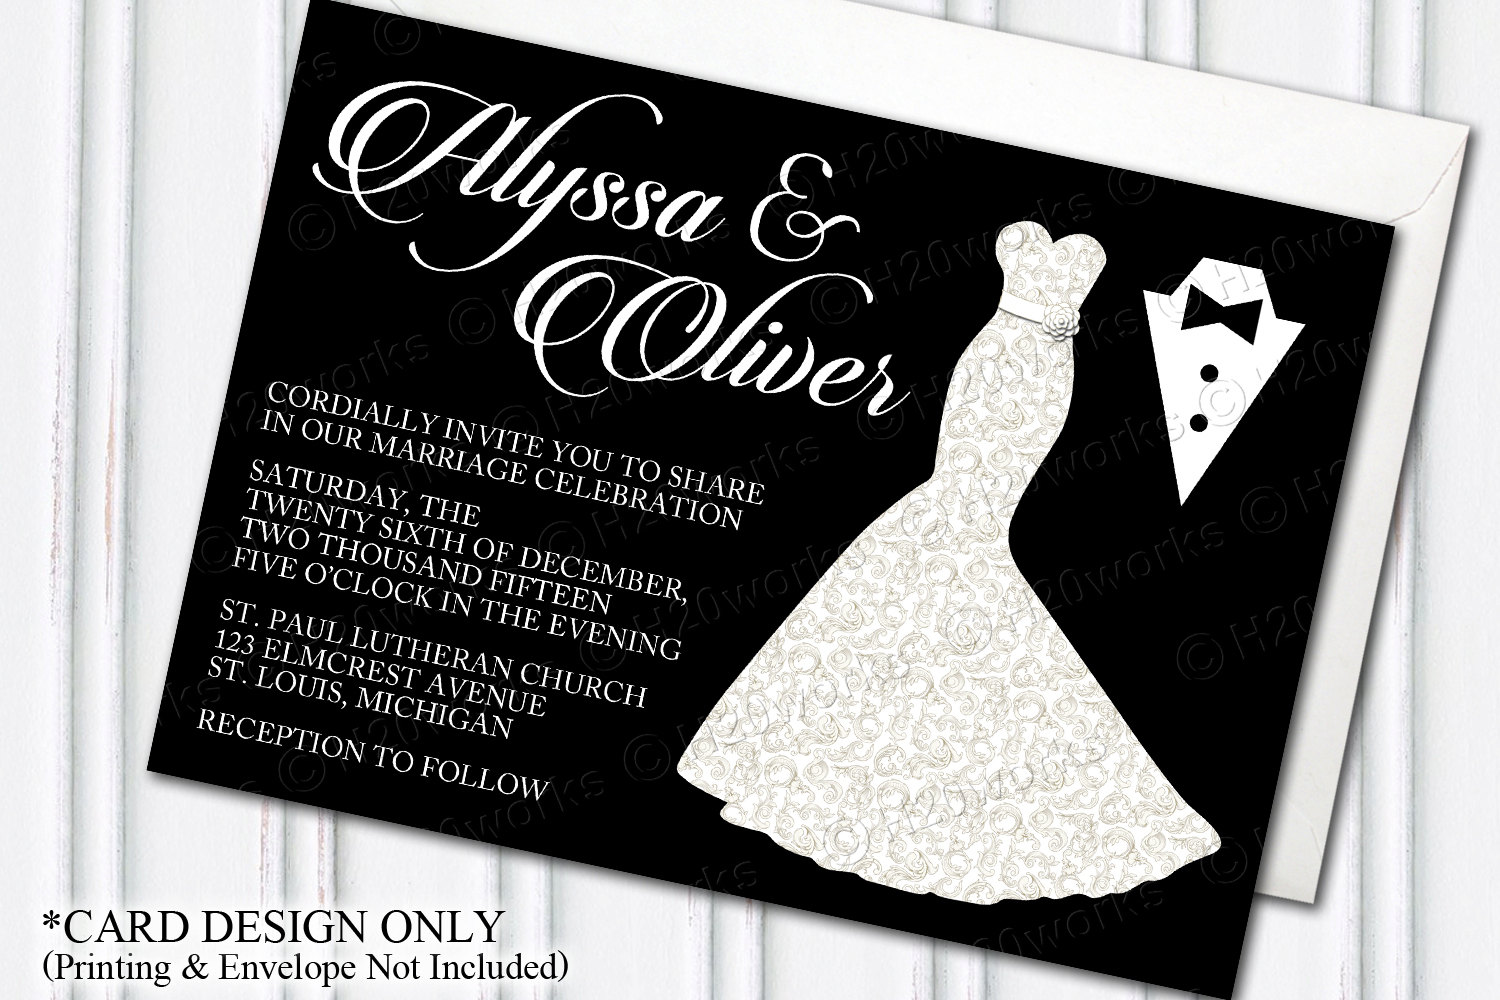 Wedding Invitation By Bride And Groom Wording Samples: Glamorous Dress & Tuxedo Wedding Invitation Glam Themed